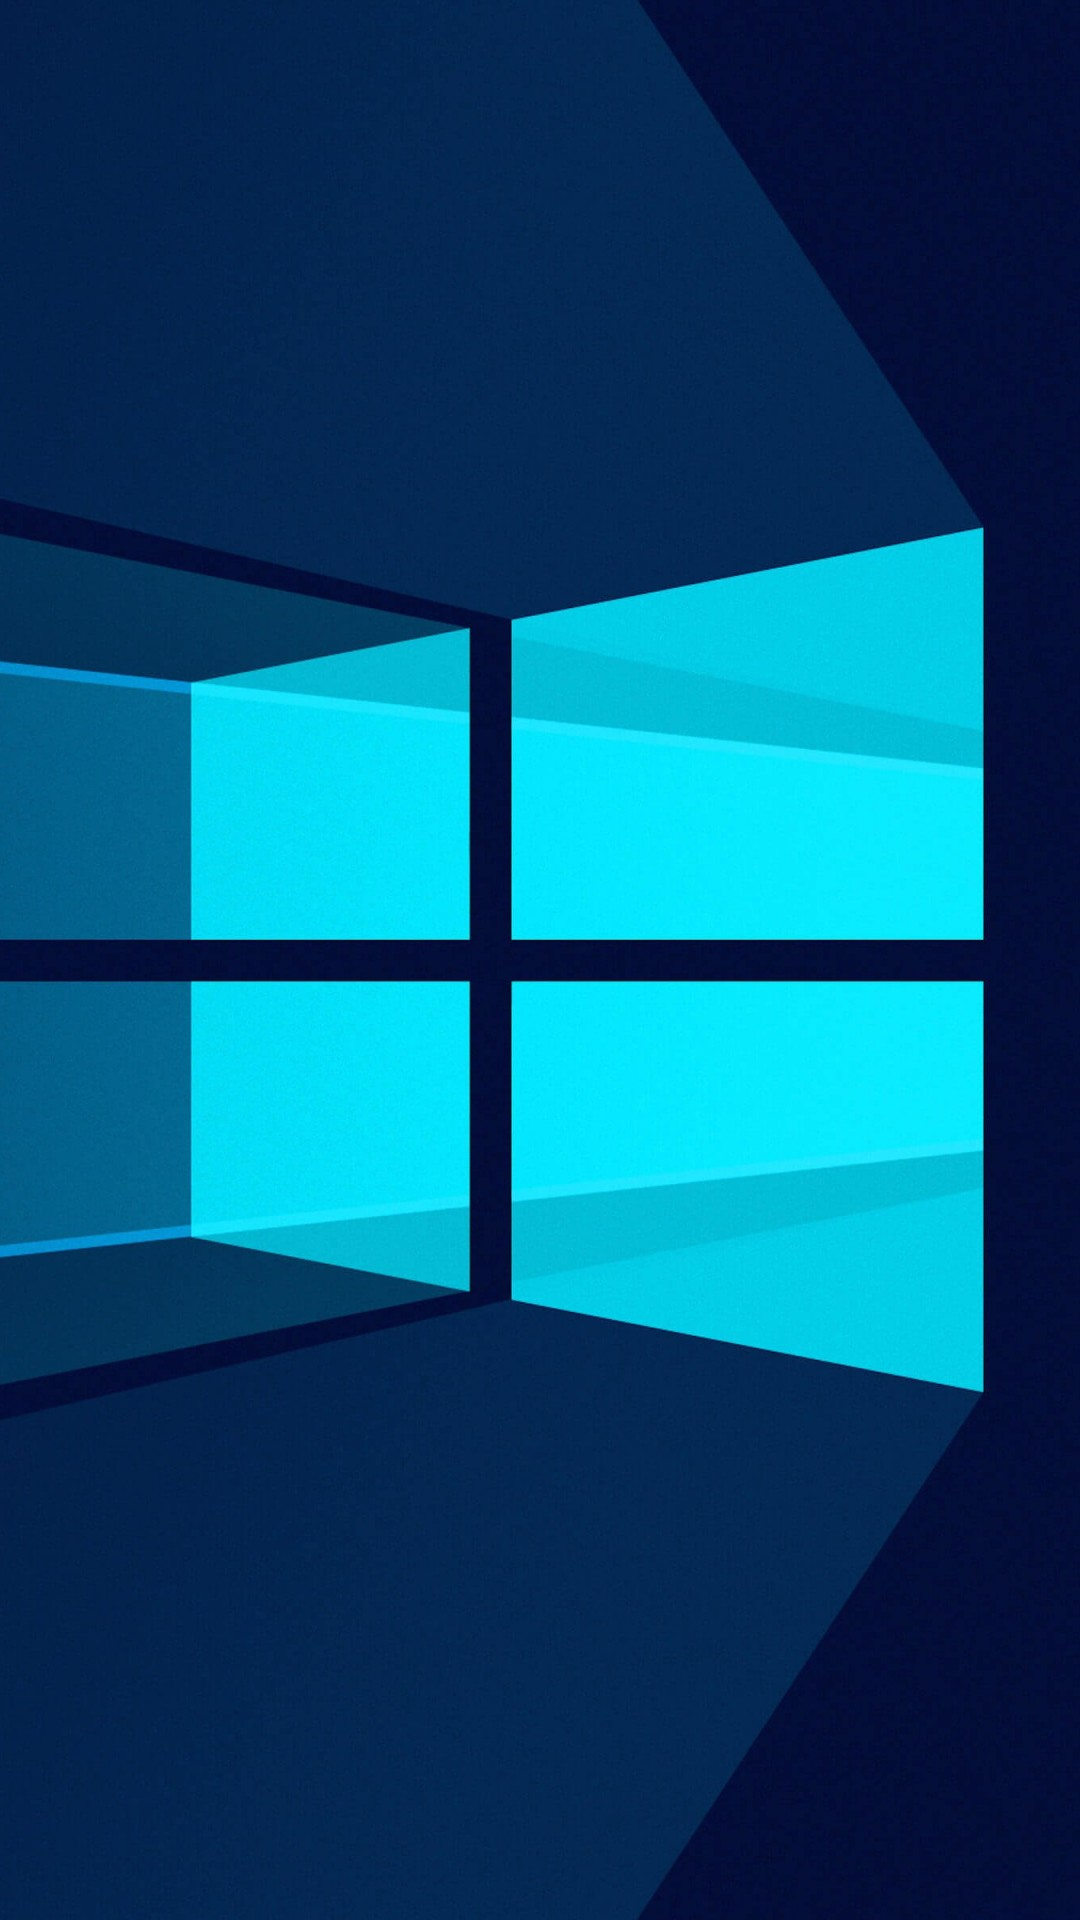 Windows 10 Flat Wallpaper for SAMSUNG Galaxy Note 3